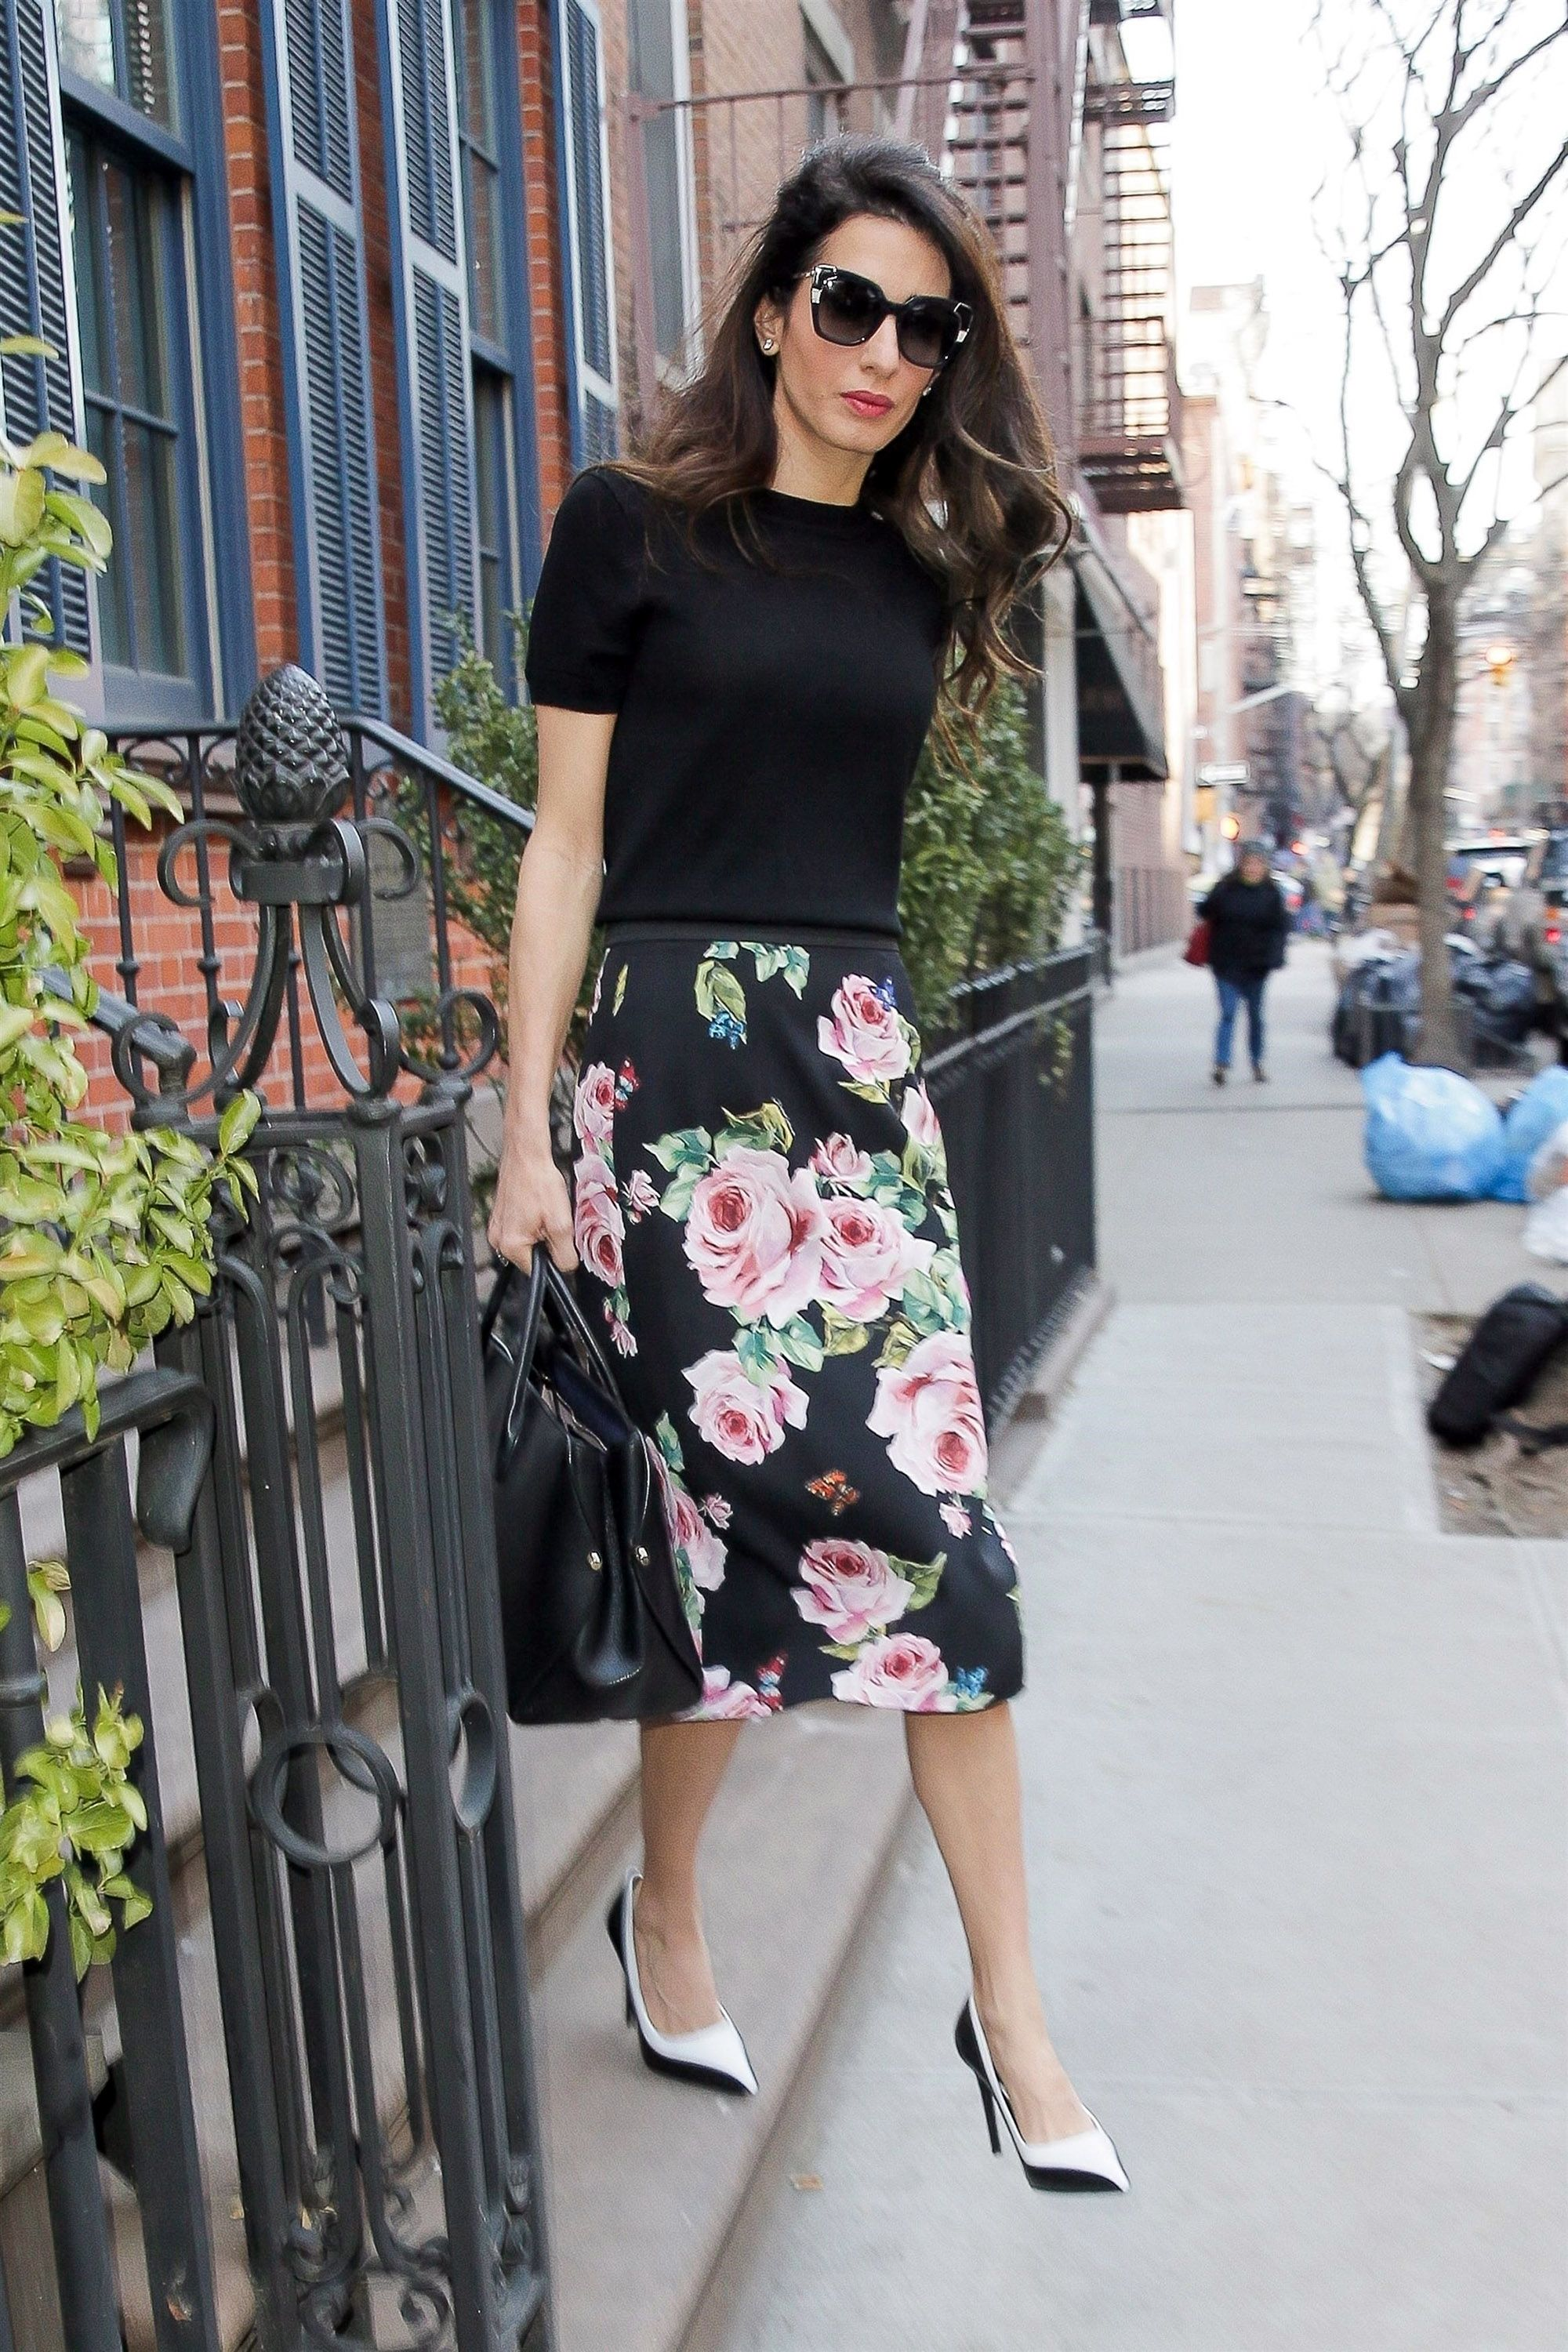 7268c49b86db Amal Clooney s Best Looks - Pictures of Amal Clooney s Top Fashion Moments